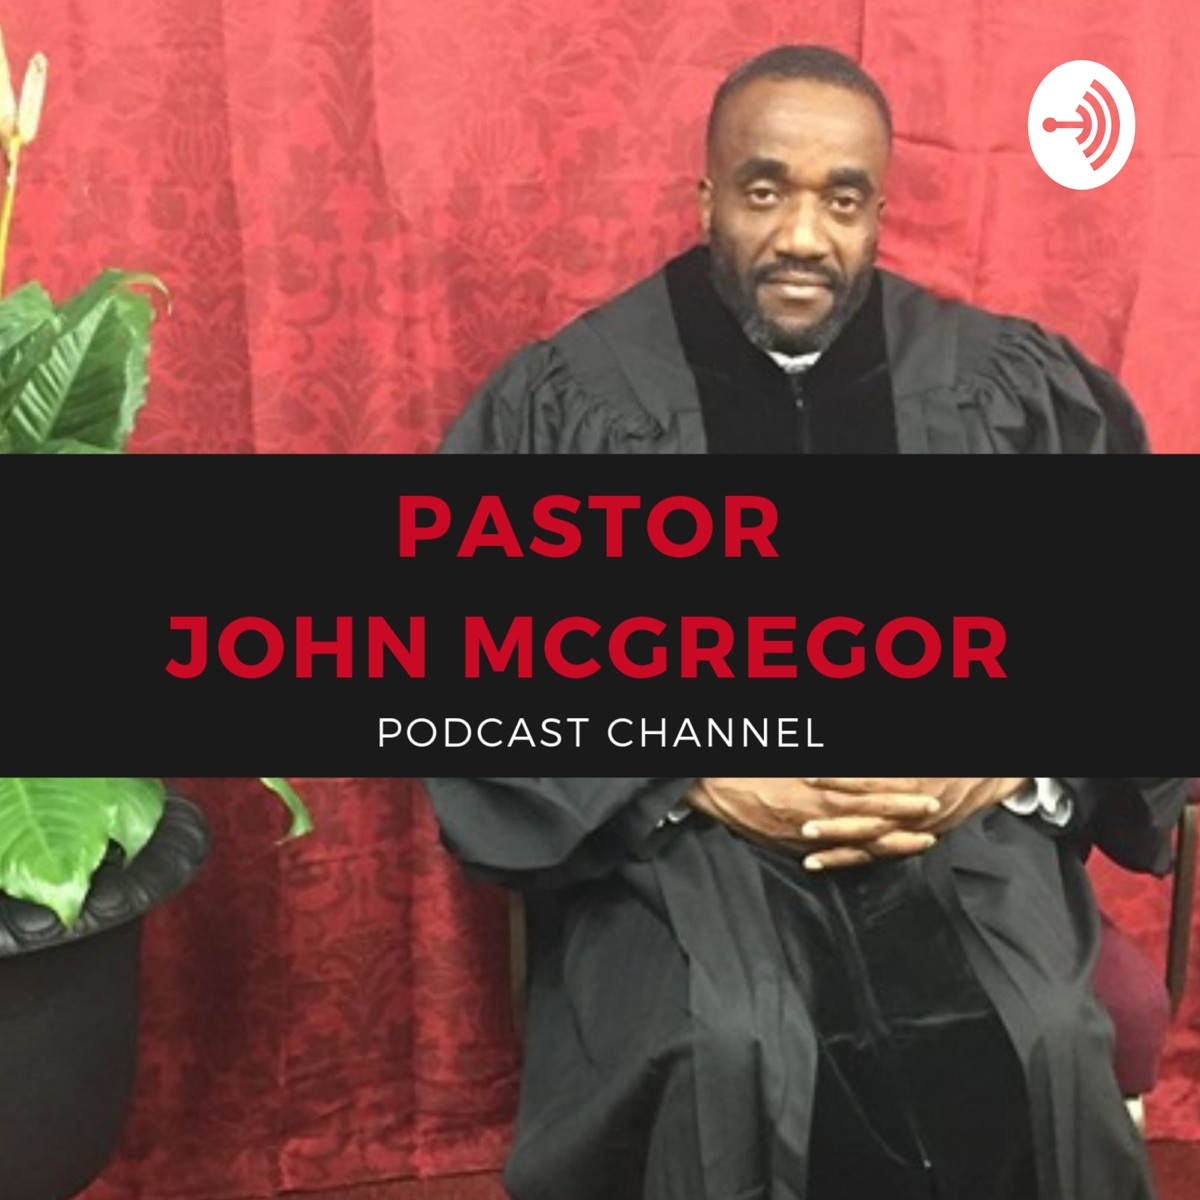 Pastor John McGregor Podcast Channel